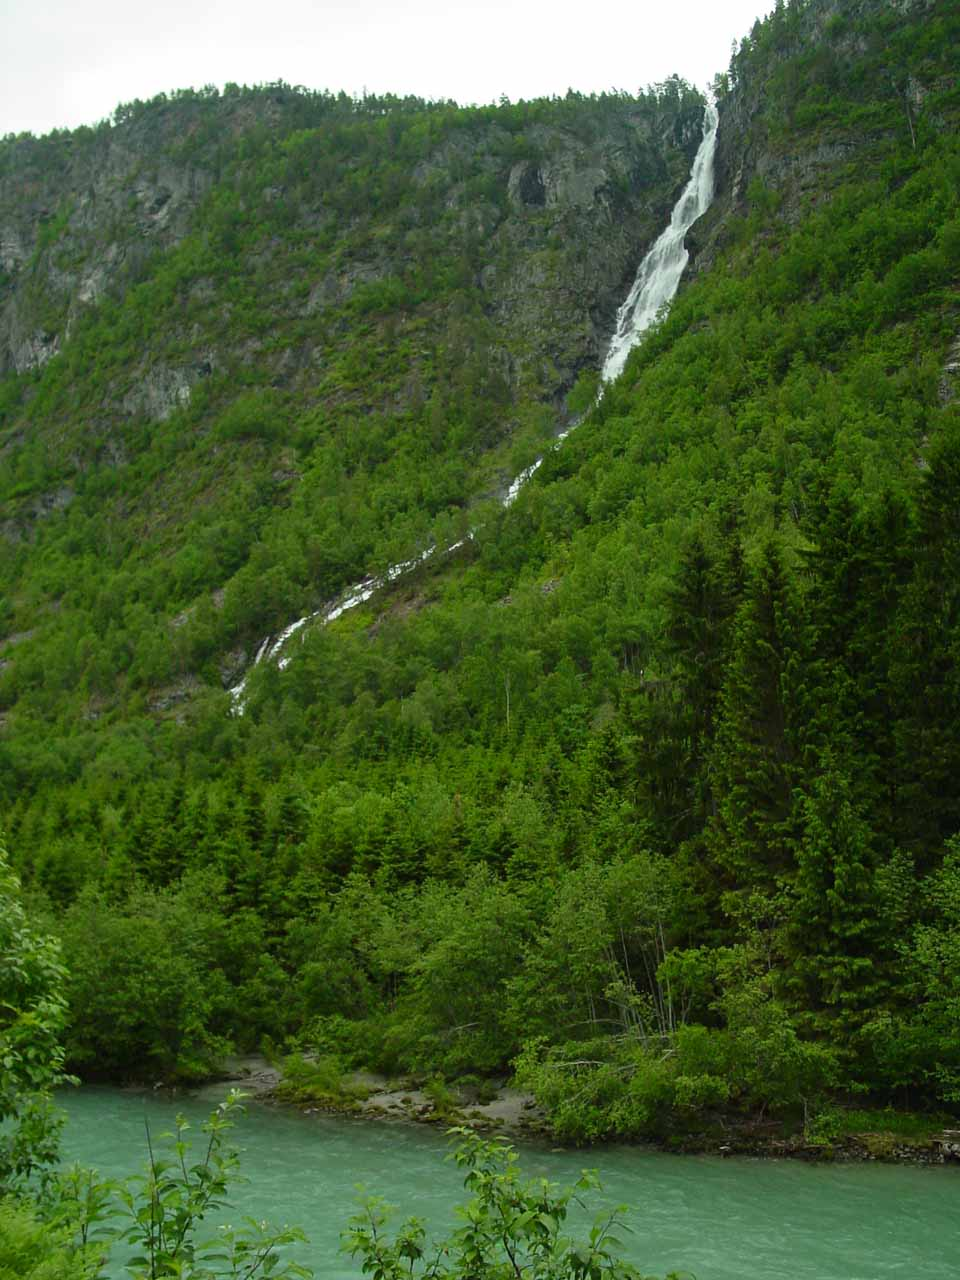 This was our first look at Ryefossen as we were driving north on the Route 604 from Gaupne